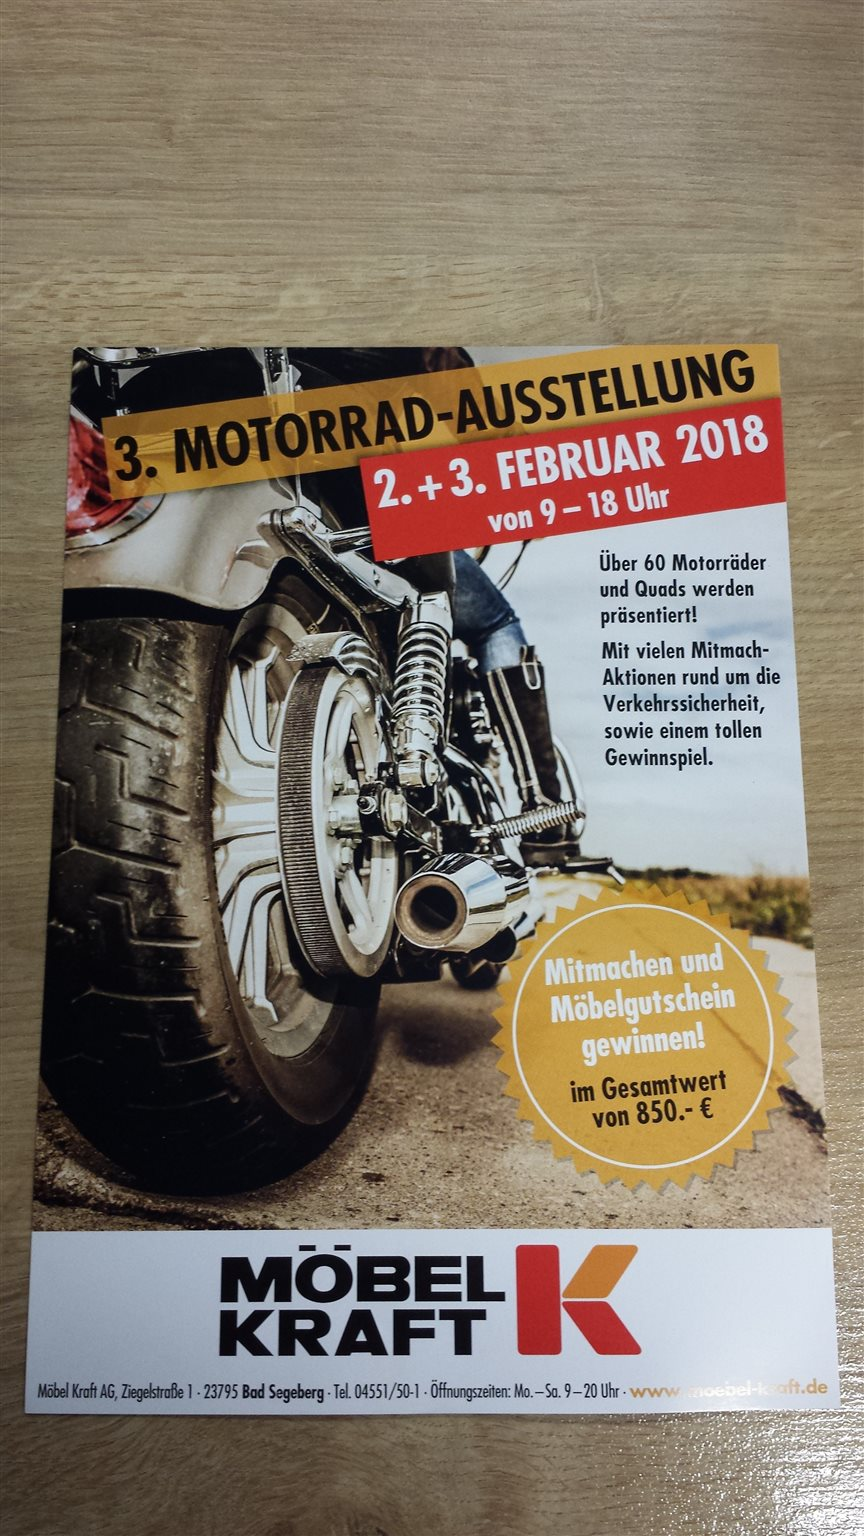 3 motorrad ausstellung m bel kraft. Black Bedroom Furniture Sets. Home Design Ideas